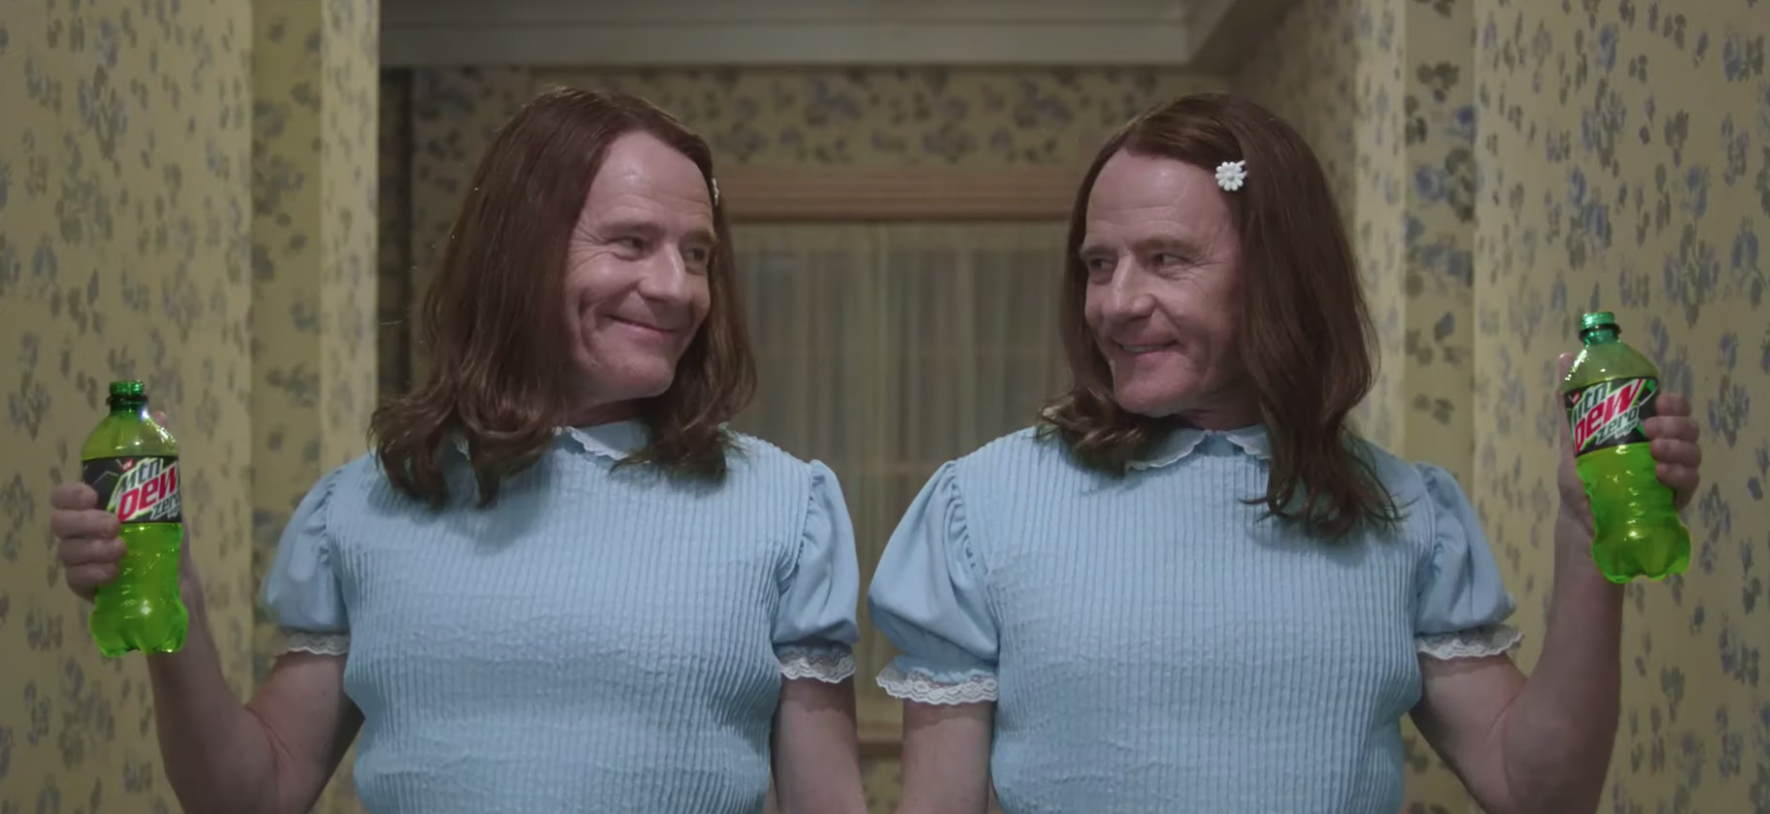 Bryan Cranston Recreates 'The Shining' In Super Bowl Ad Creepier Than The Original Stanley Kubrick Movie